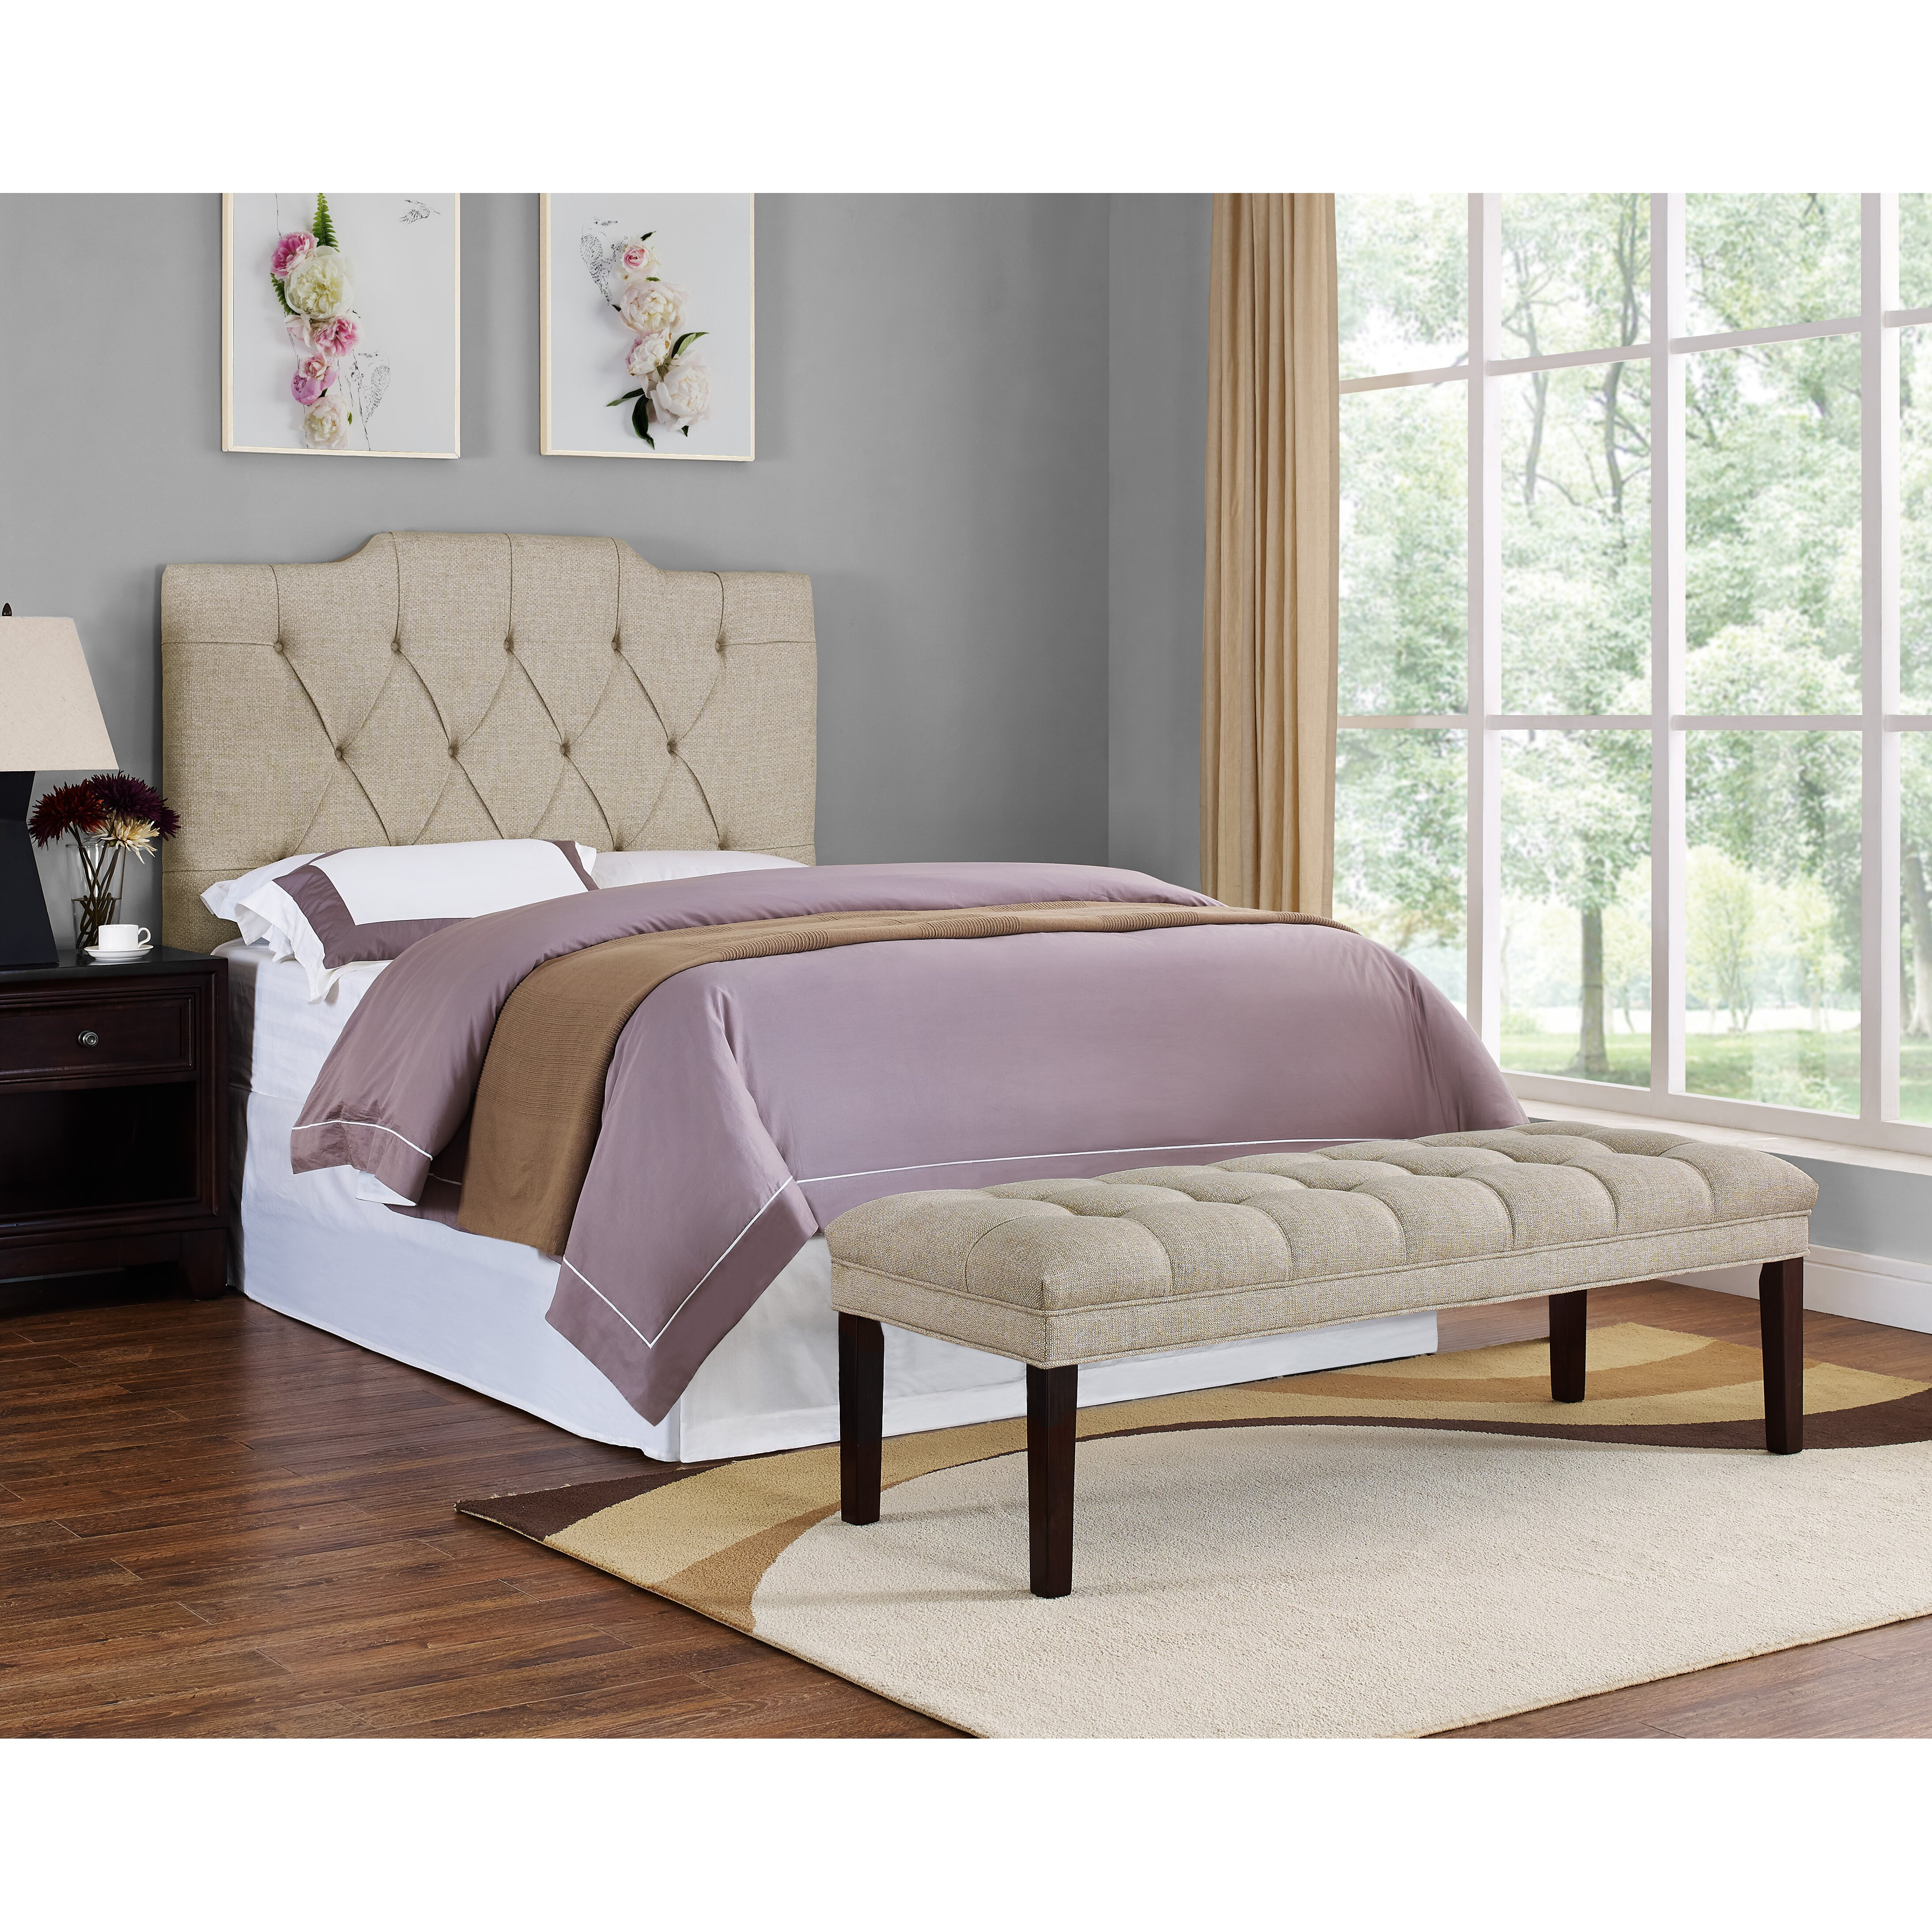 Leather Bedroom Bench Pri Upholstered Tufted Bedroom Bench Reviews Wayfair